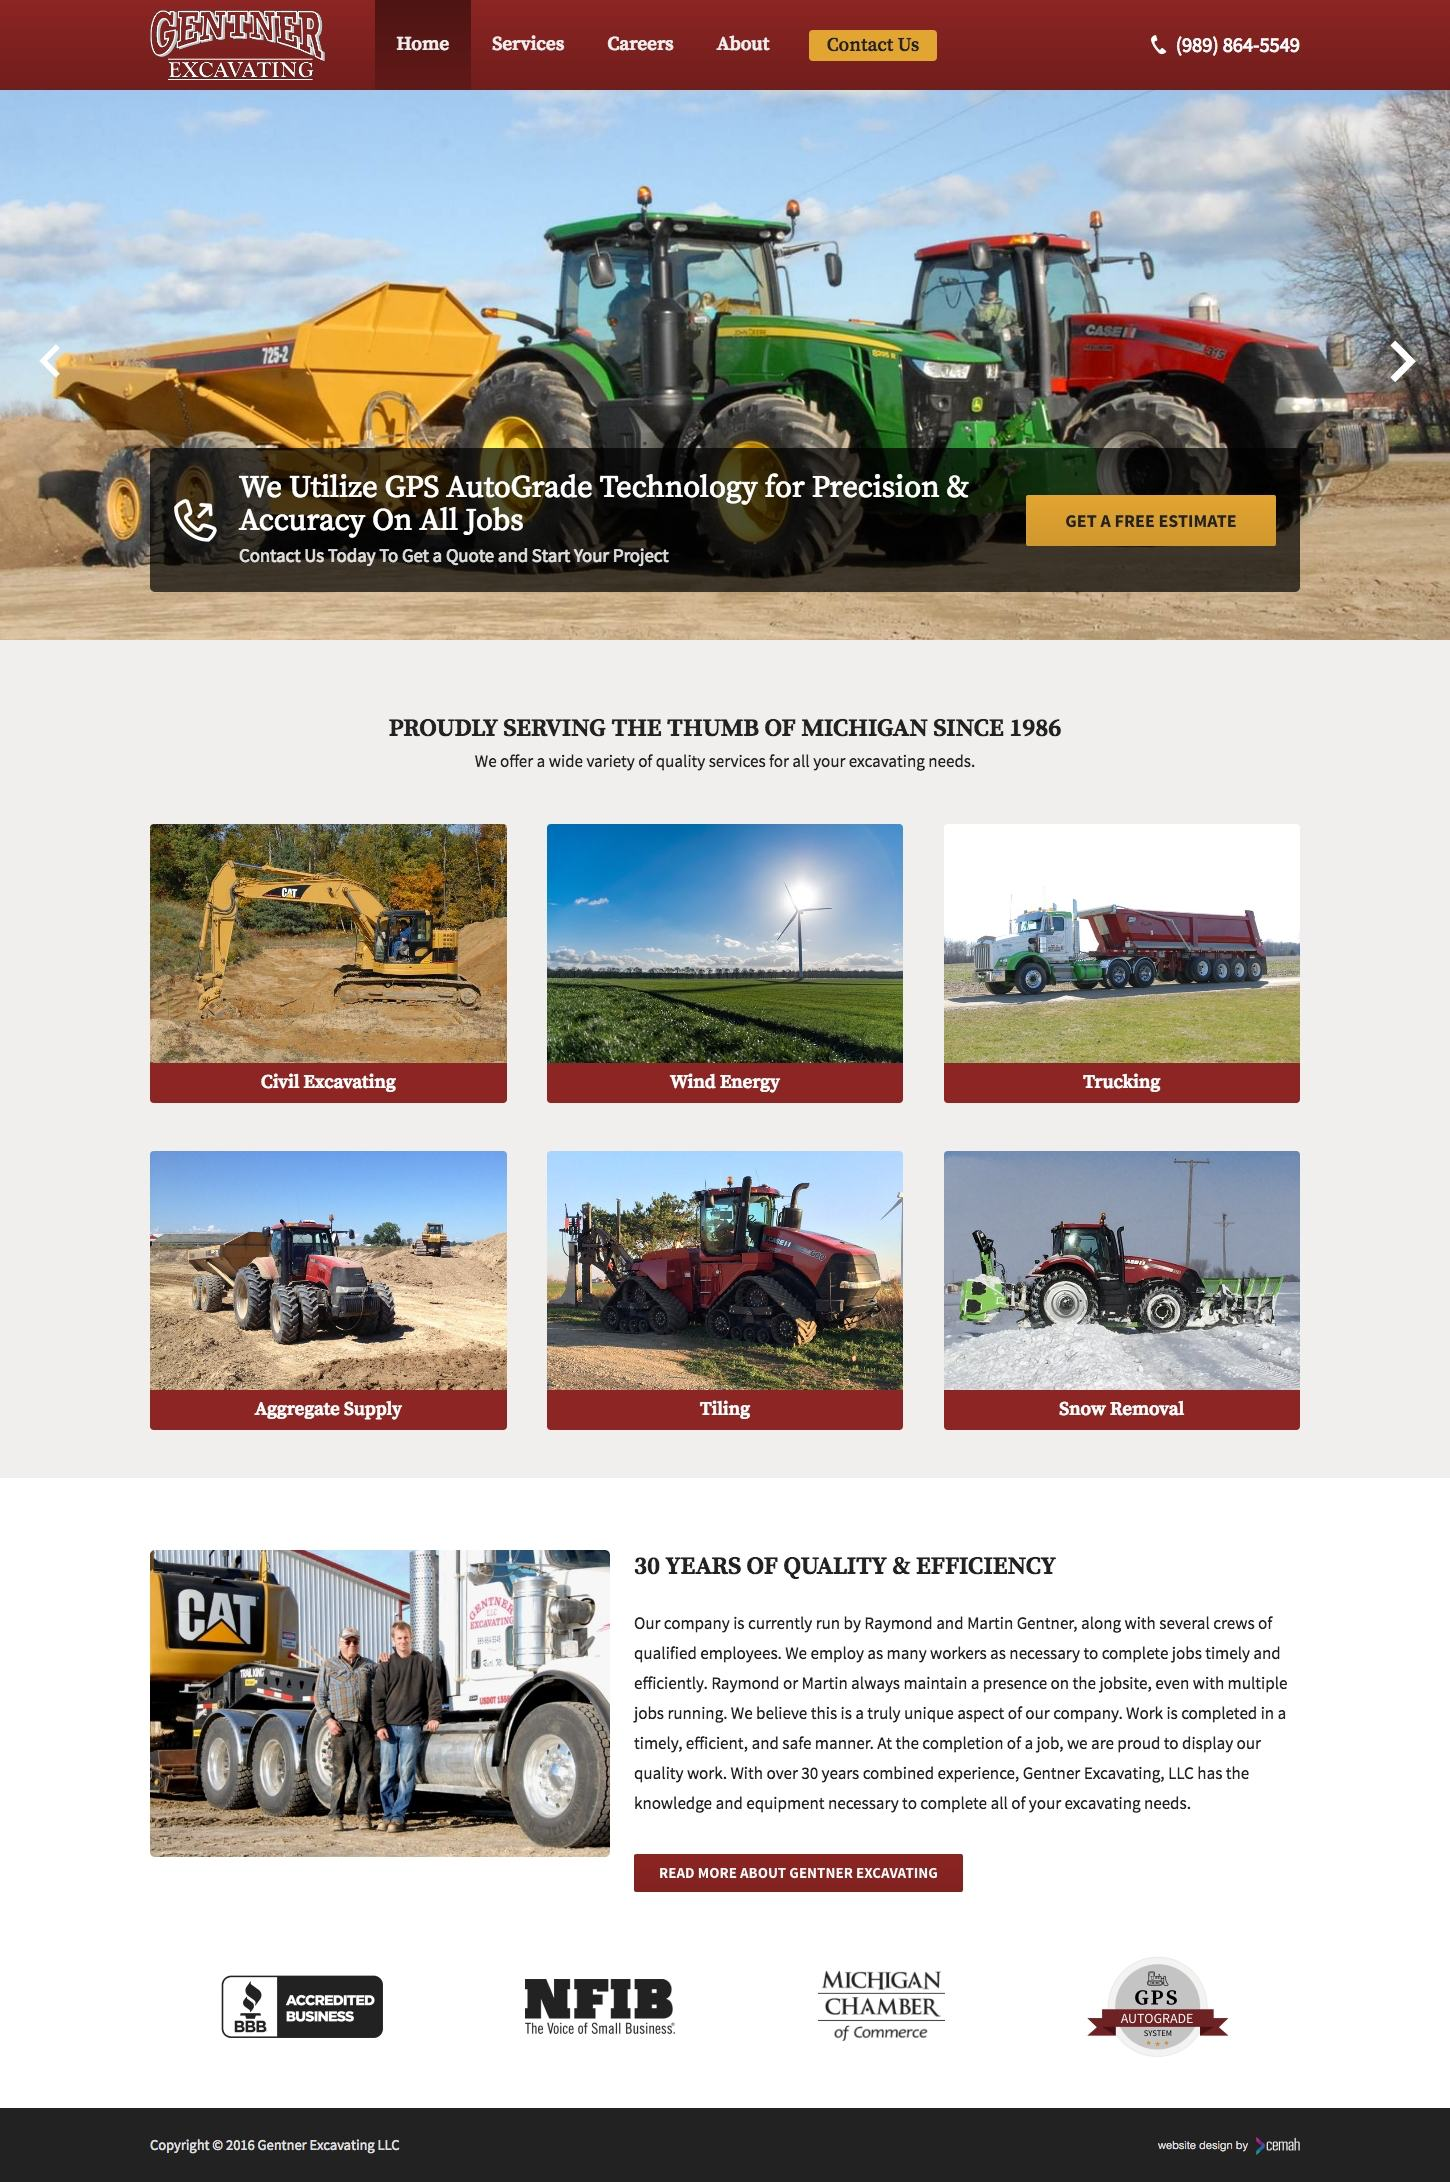 Excavating website design layout featuring the homepage for a civil excavation small business